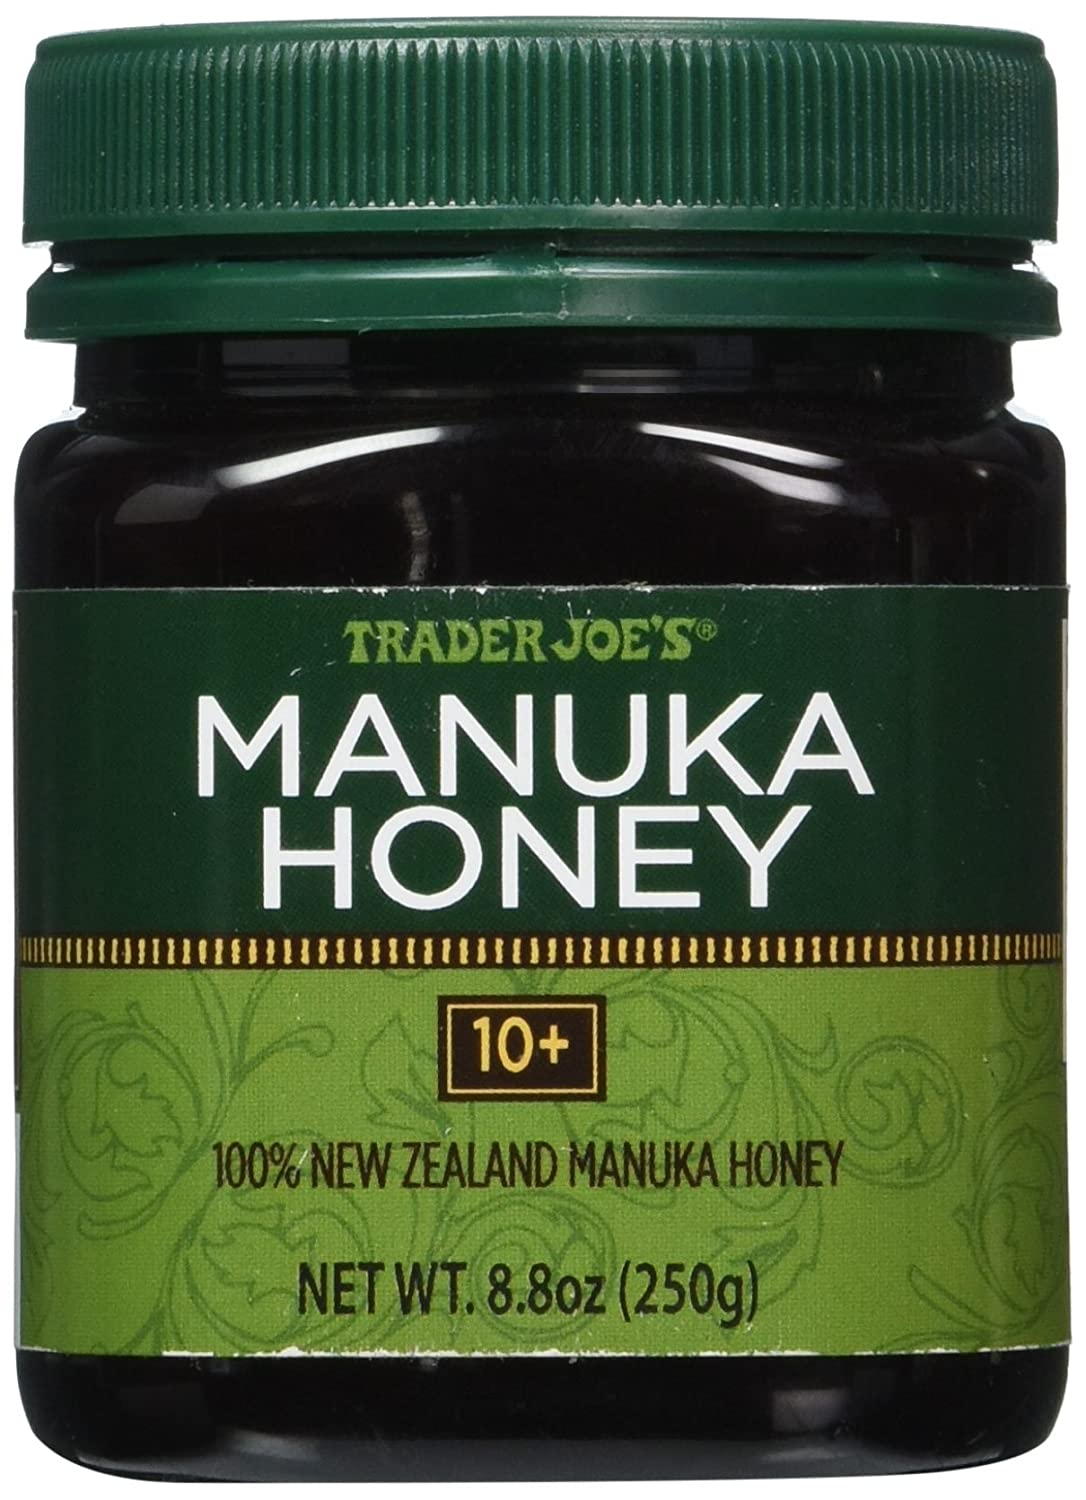 Top 10 Best Manuka Honey Reviews 2018-2019 - cover